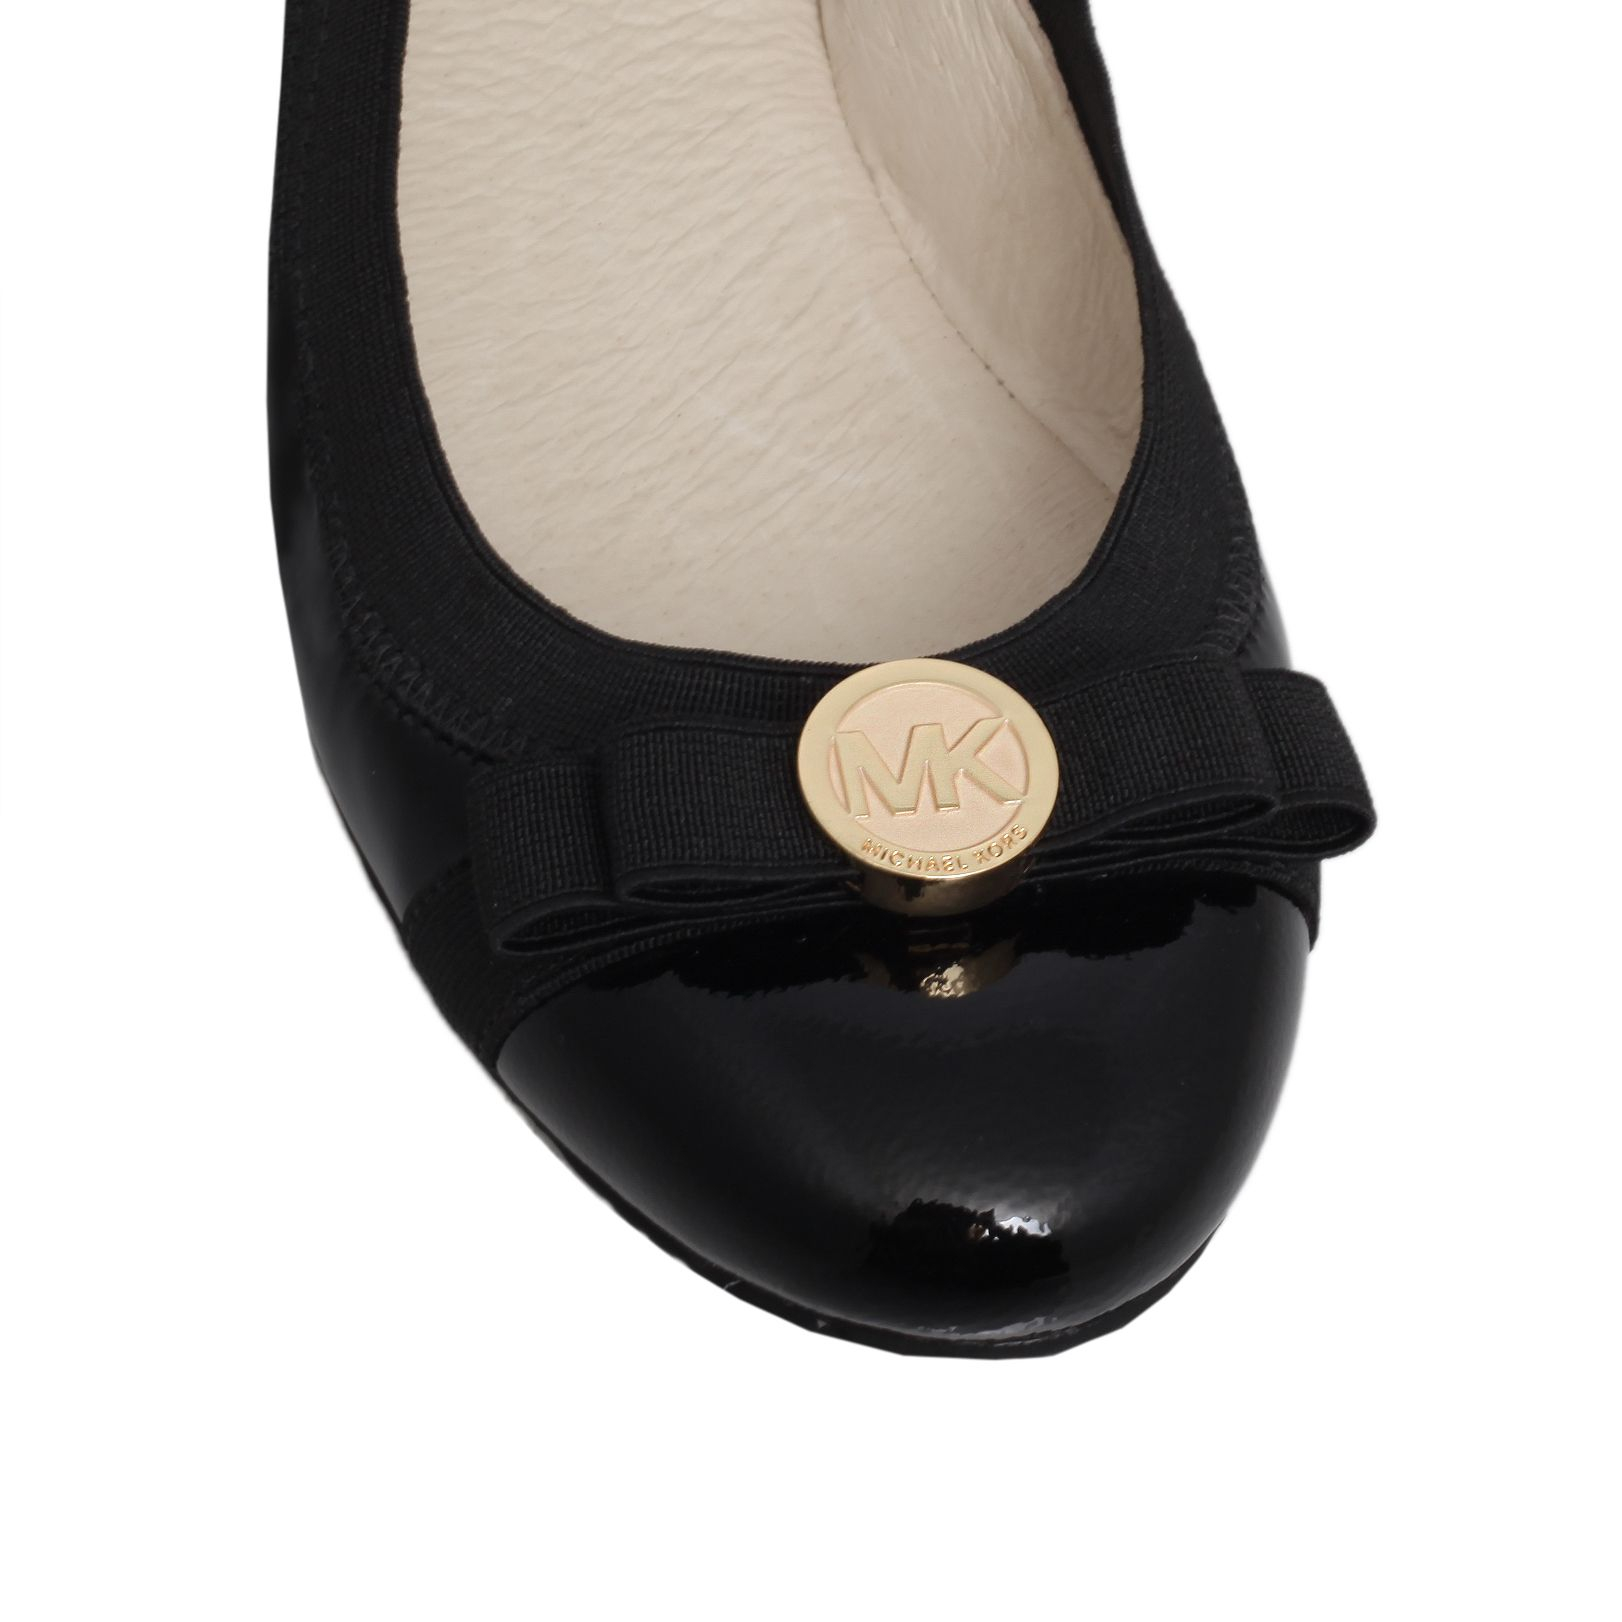 michael kors dixie ballet flat slip ons in black lyst. Black Bedroom Furniture Sets. Home Design Ideas